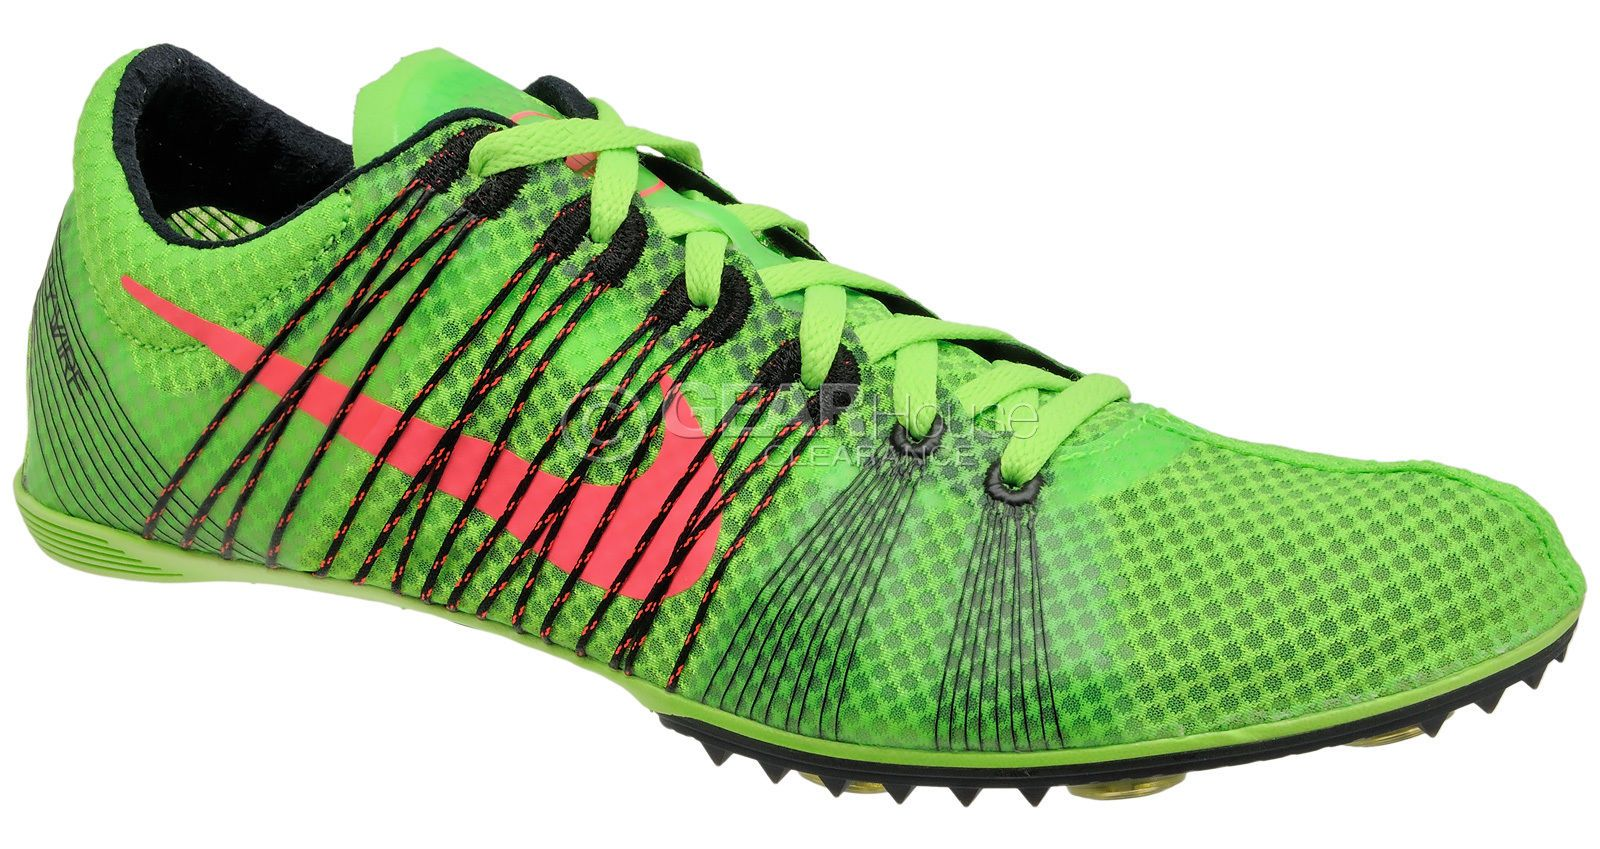 New $120 Nike Zoom Victory 2 Mens Track Spikes Mid Distance Shoes Green :  Size 8